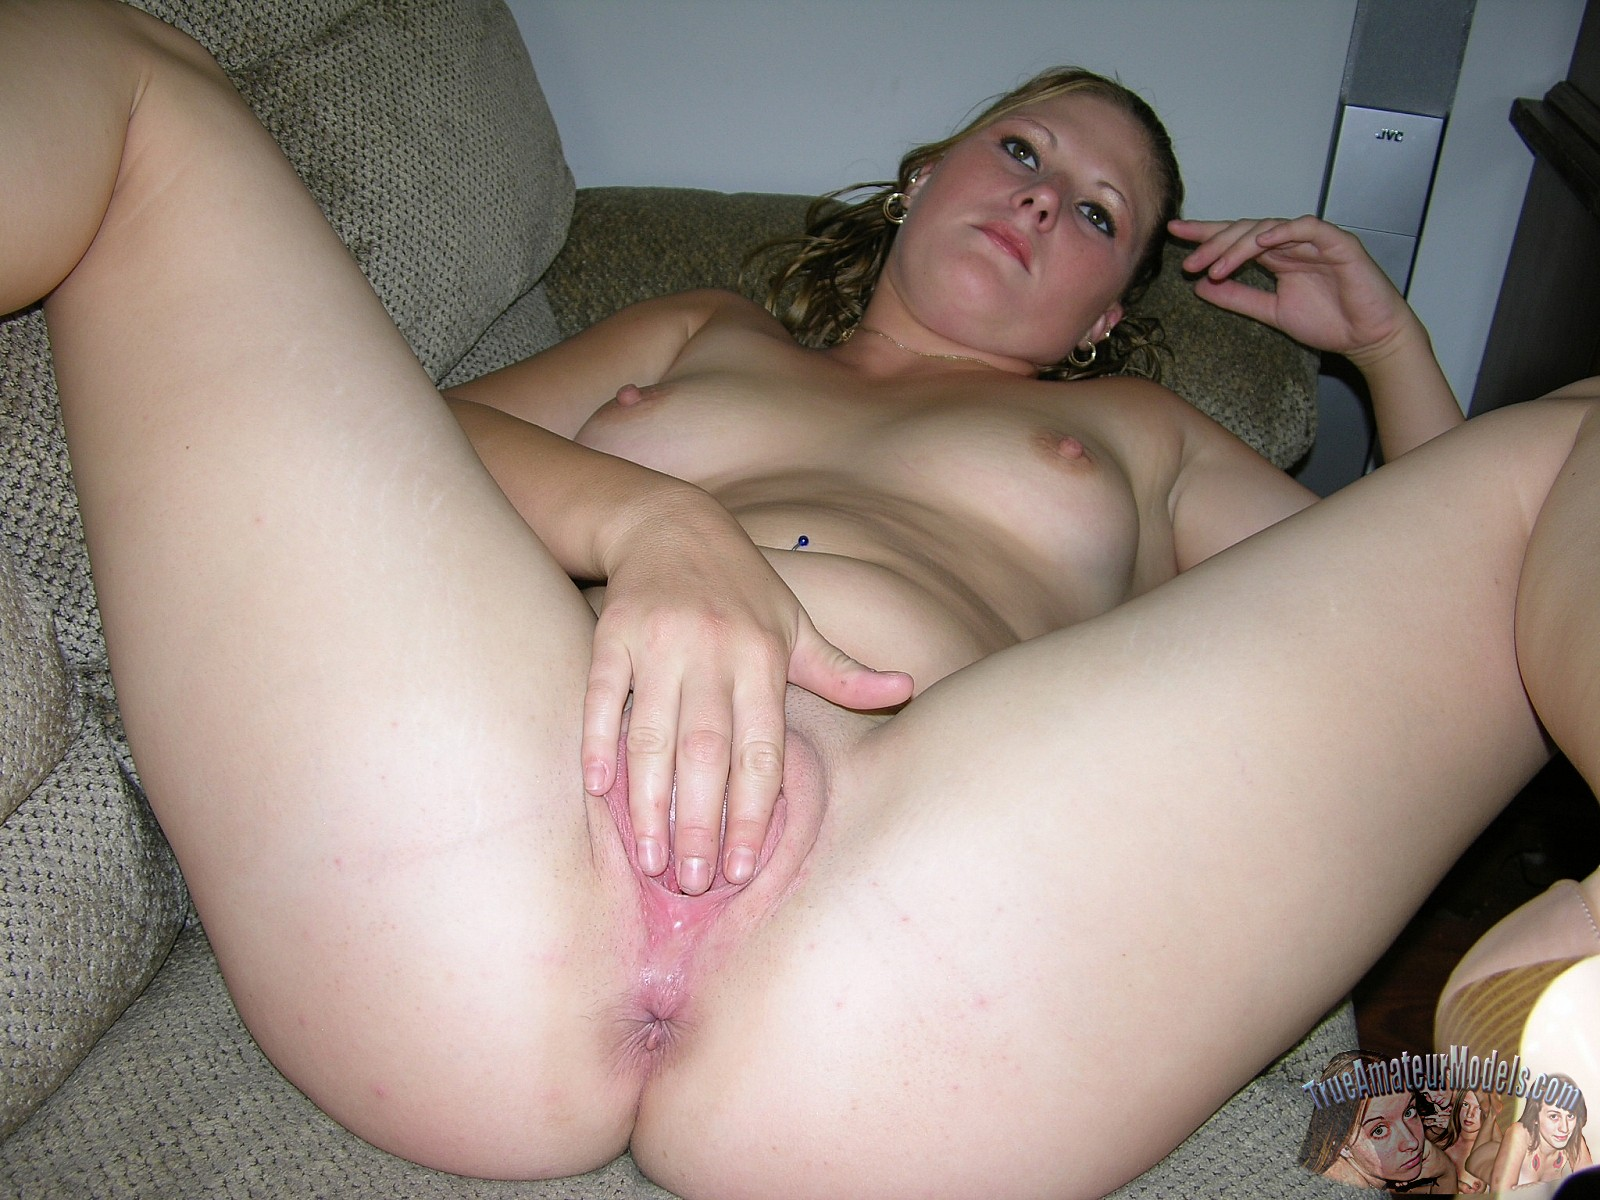 Girls hot nude hillbilly